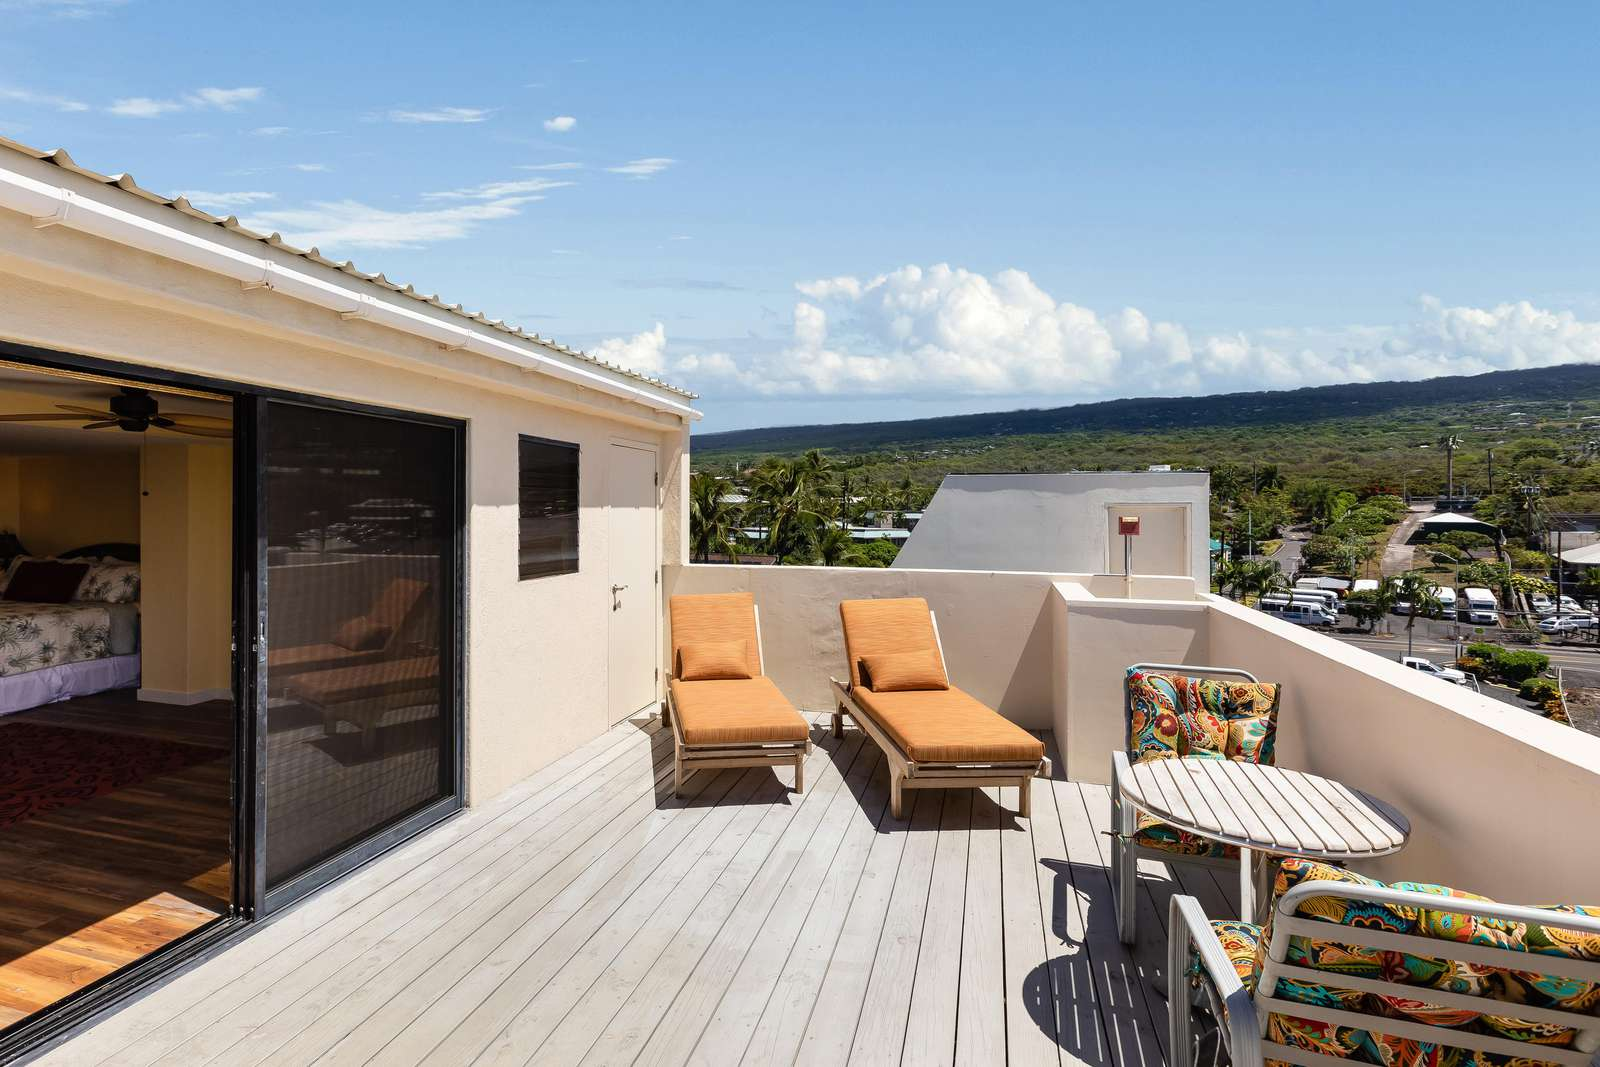 Private Sun deck off of upstairs bedroom